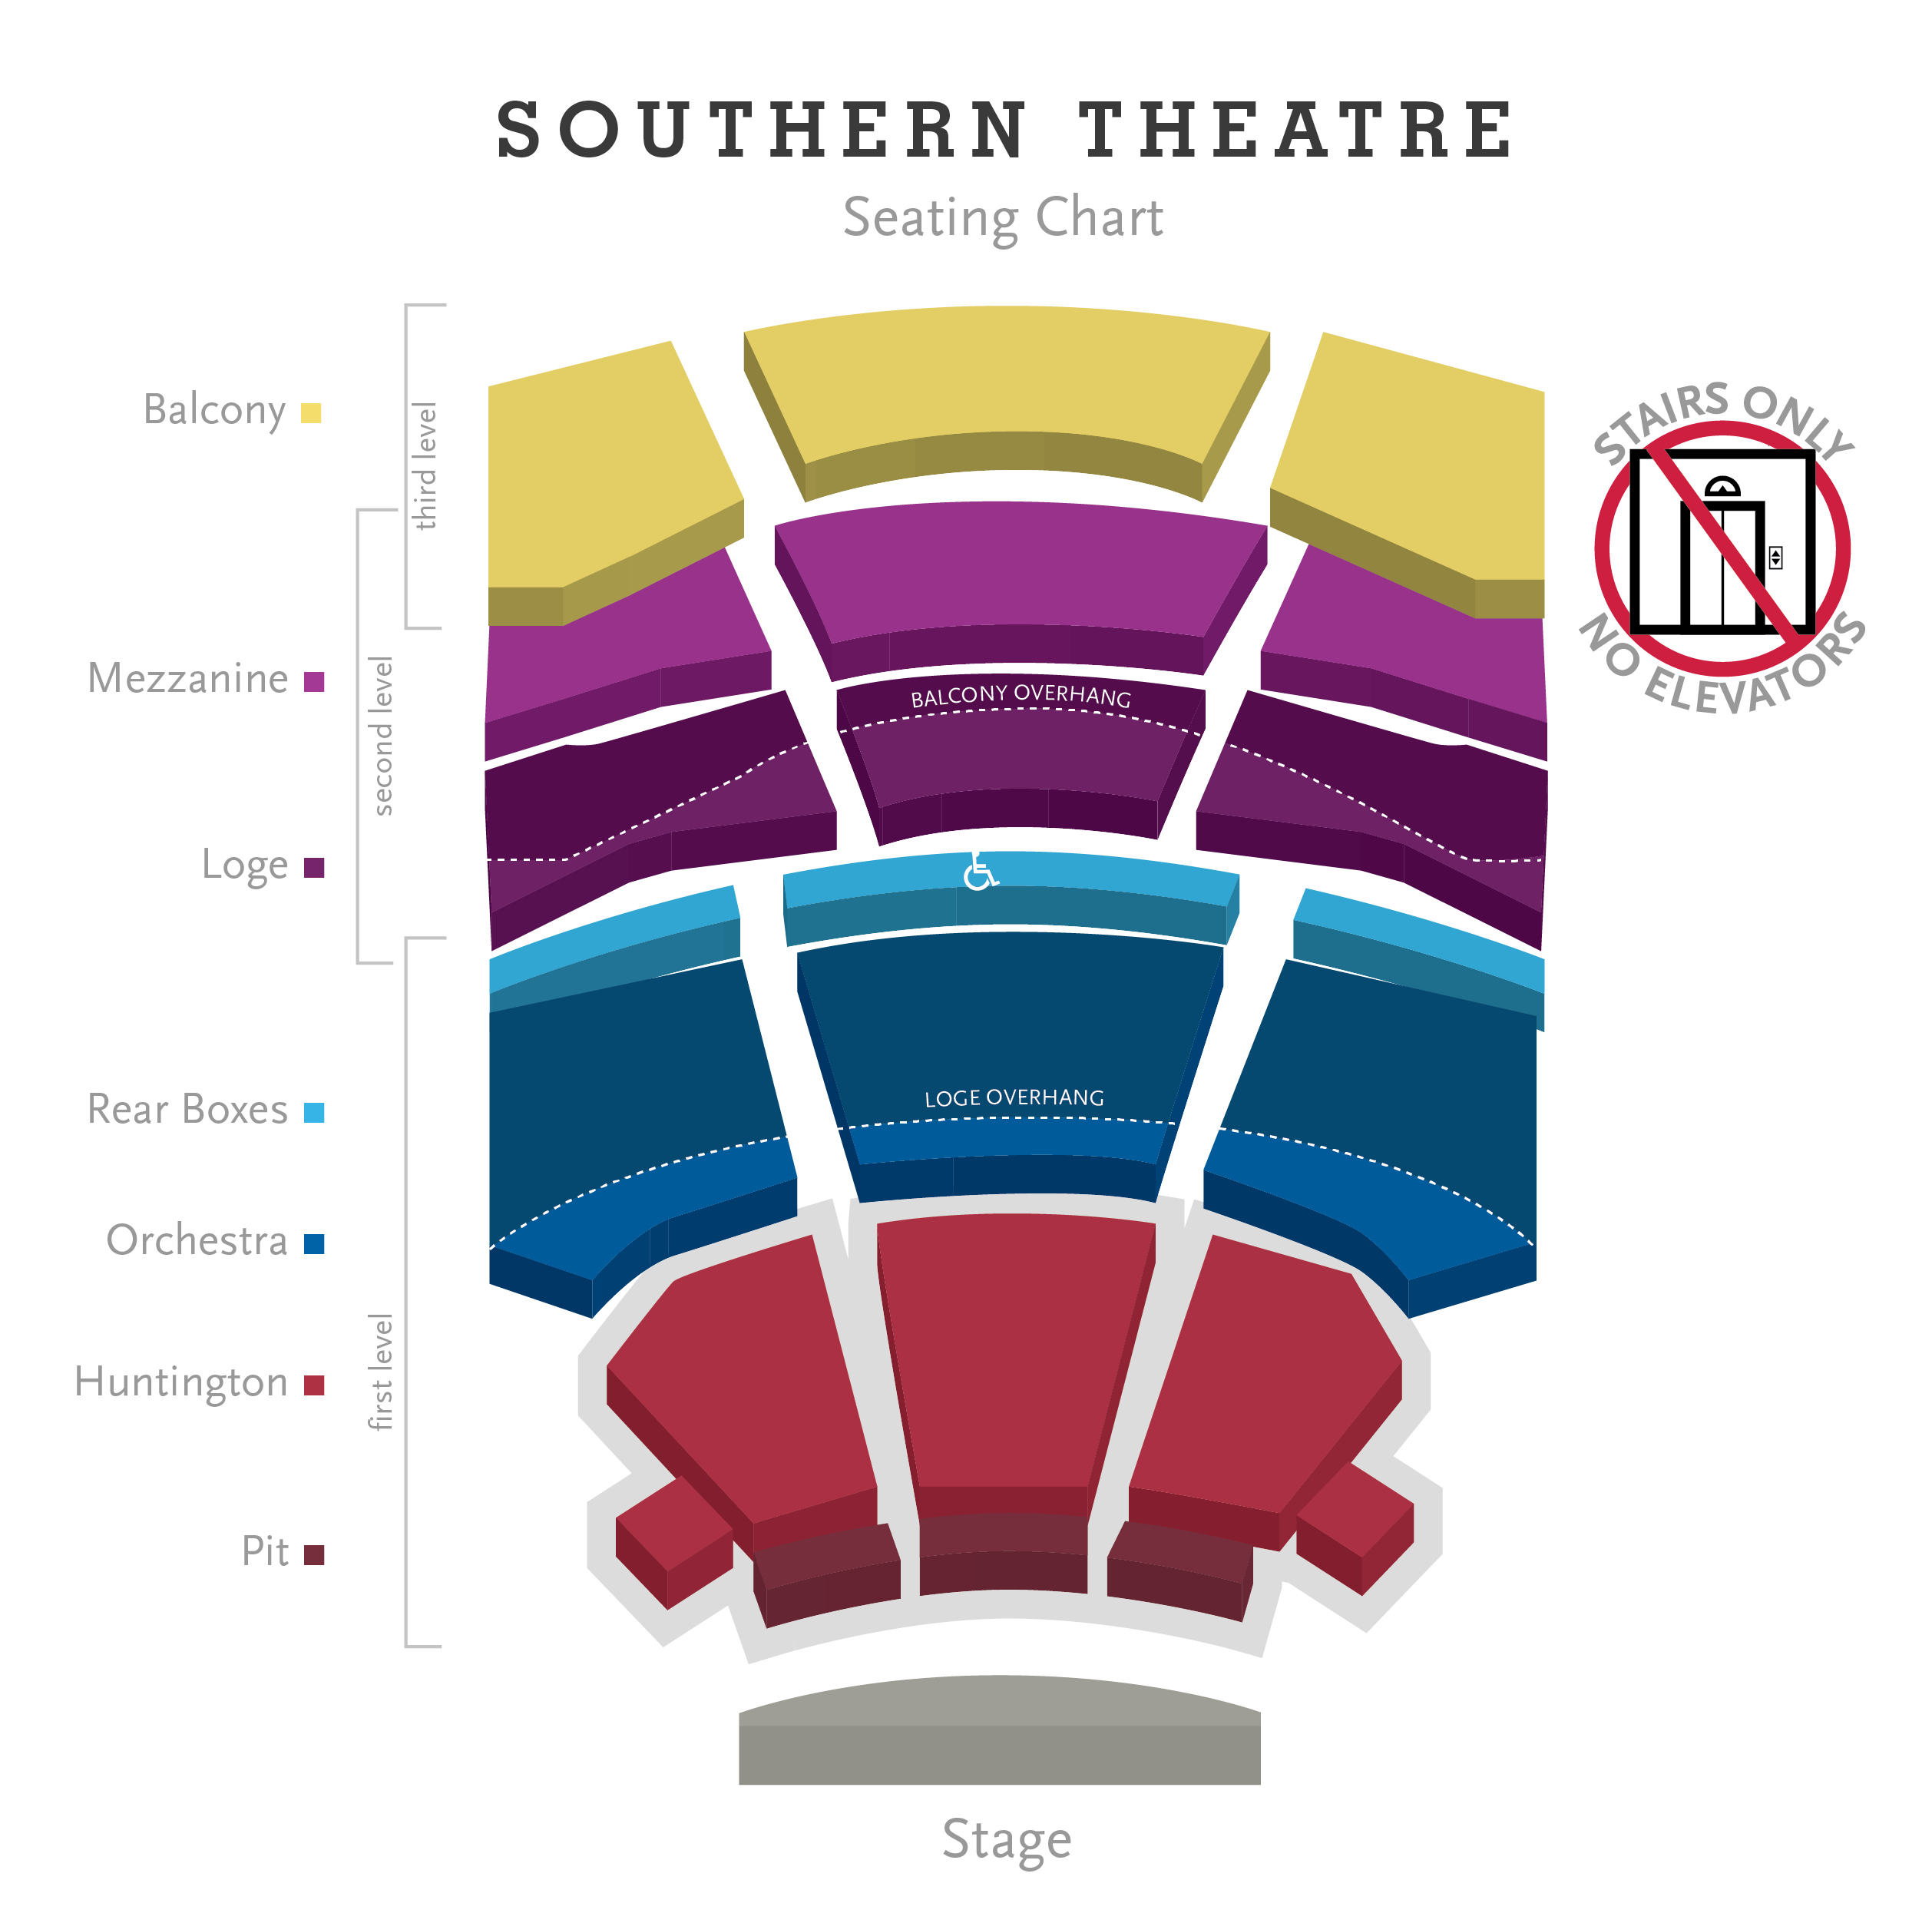 Southern Theatre Seating Chart.png